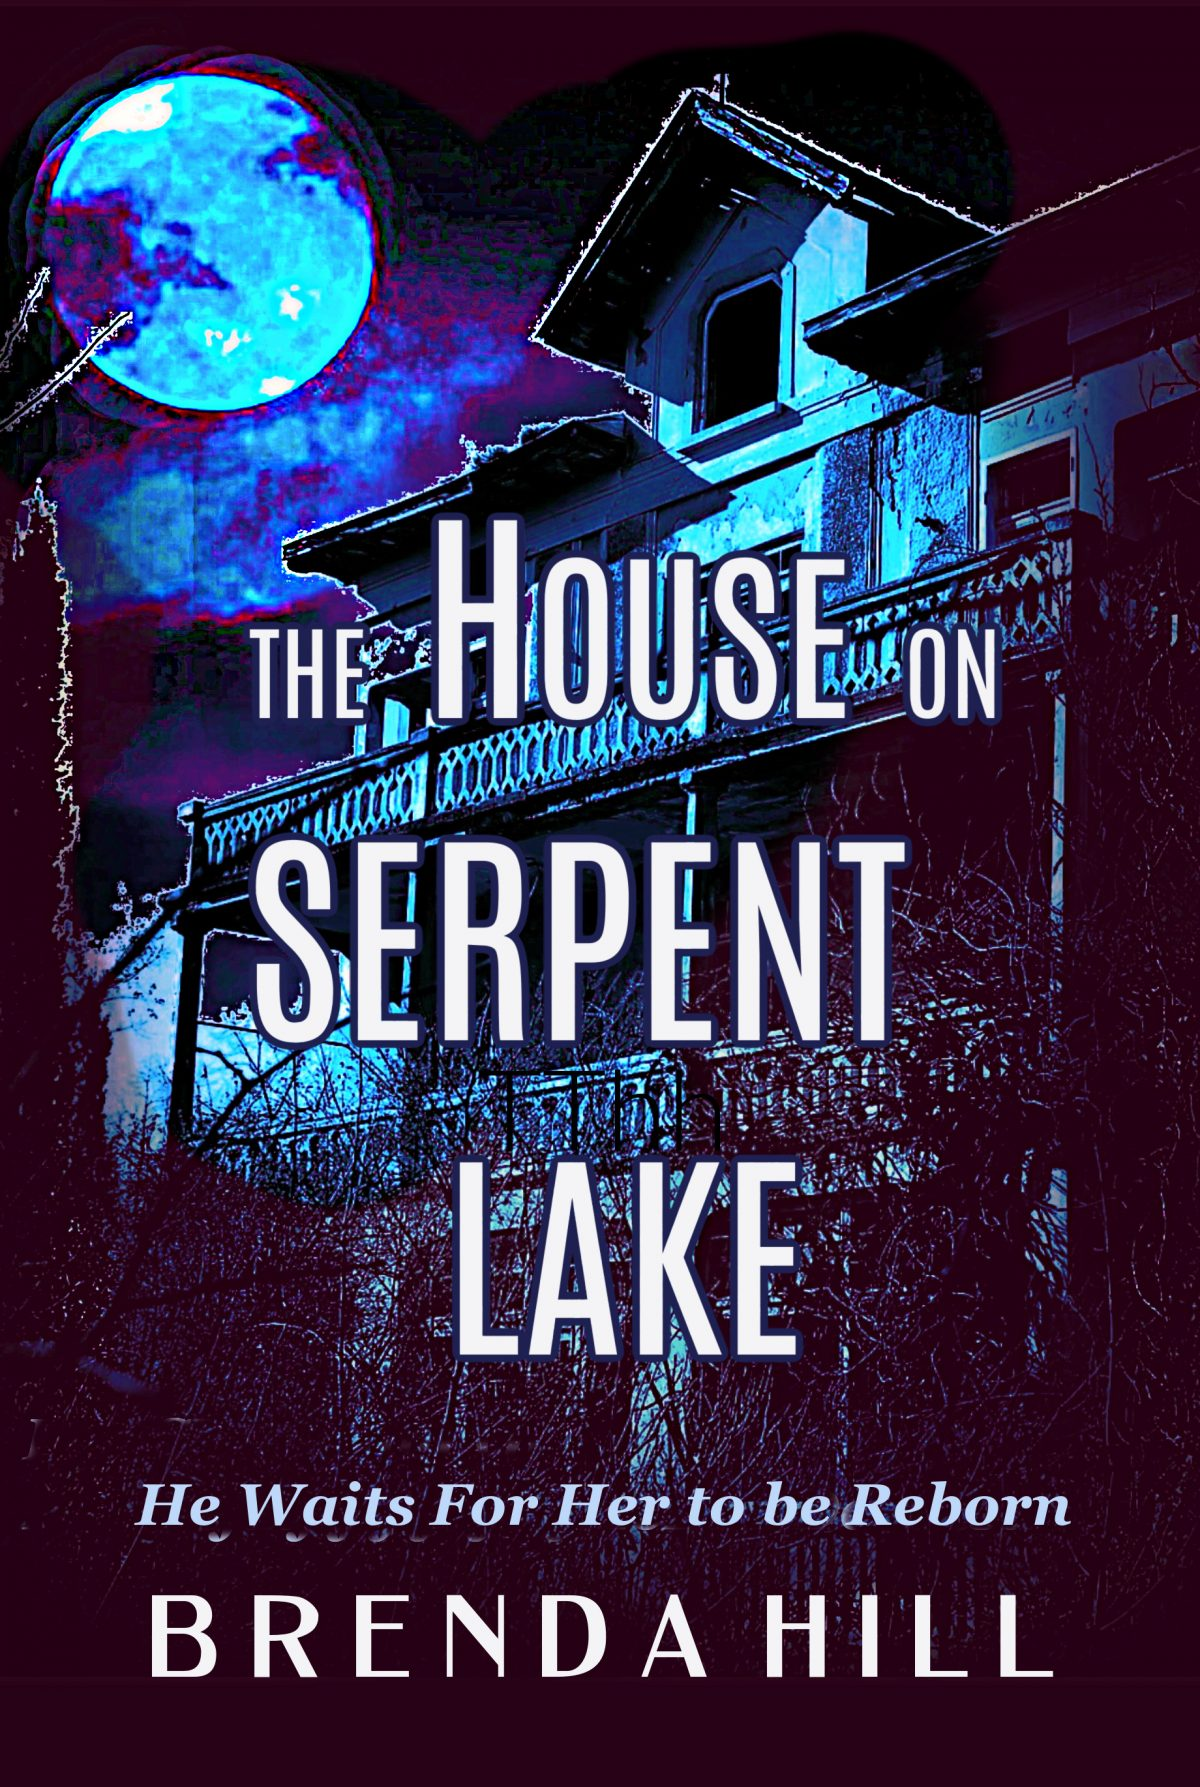 The House on Serpent Lake:  He Waits For Her to be Reborn